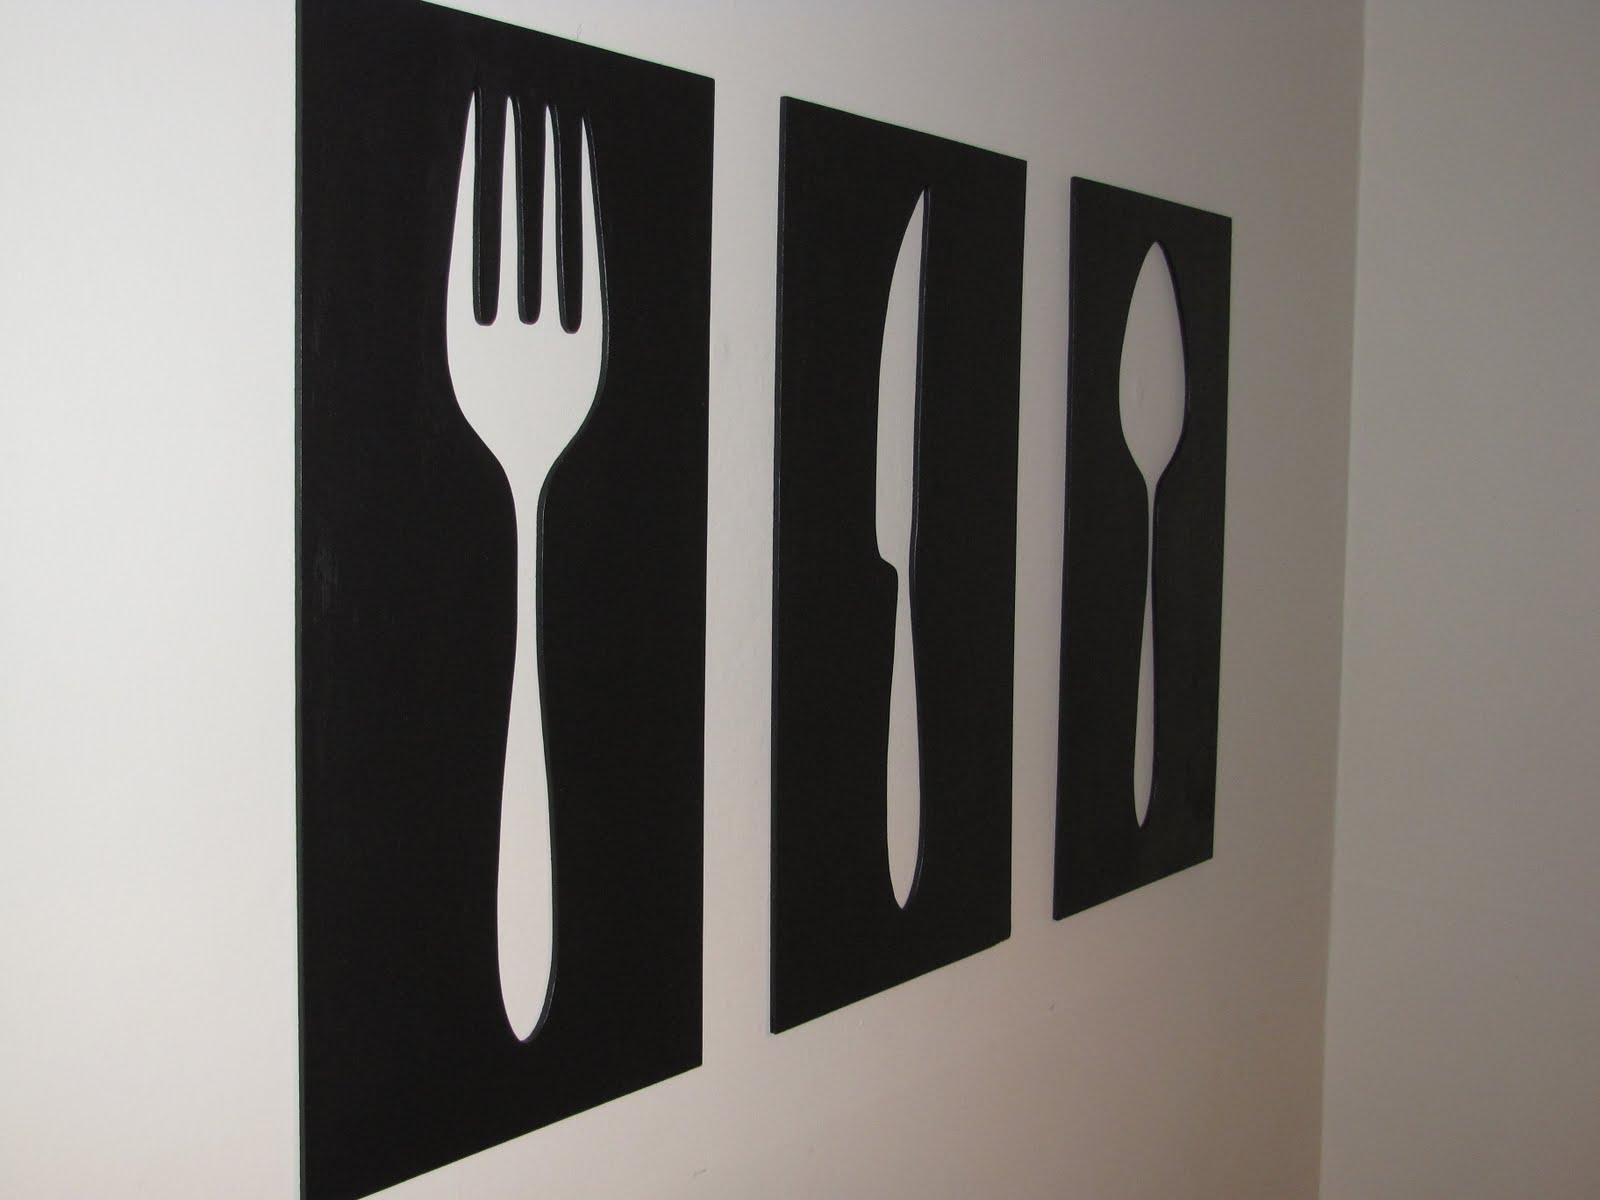 Dining Fork And Spoon Wall Decor : Good Fork And Spoon Wall Decor Within Giant Fork And Spoon Wall Art (Image 4 of 20)